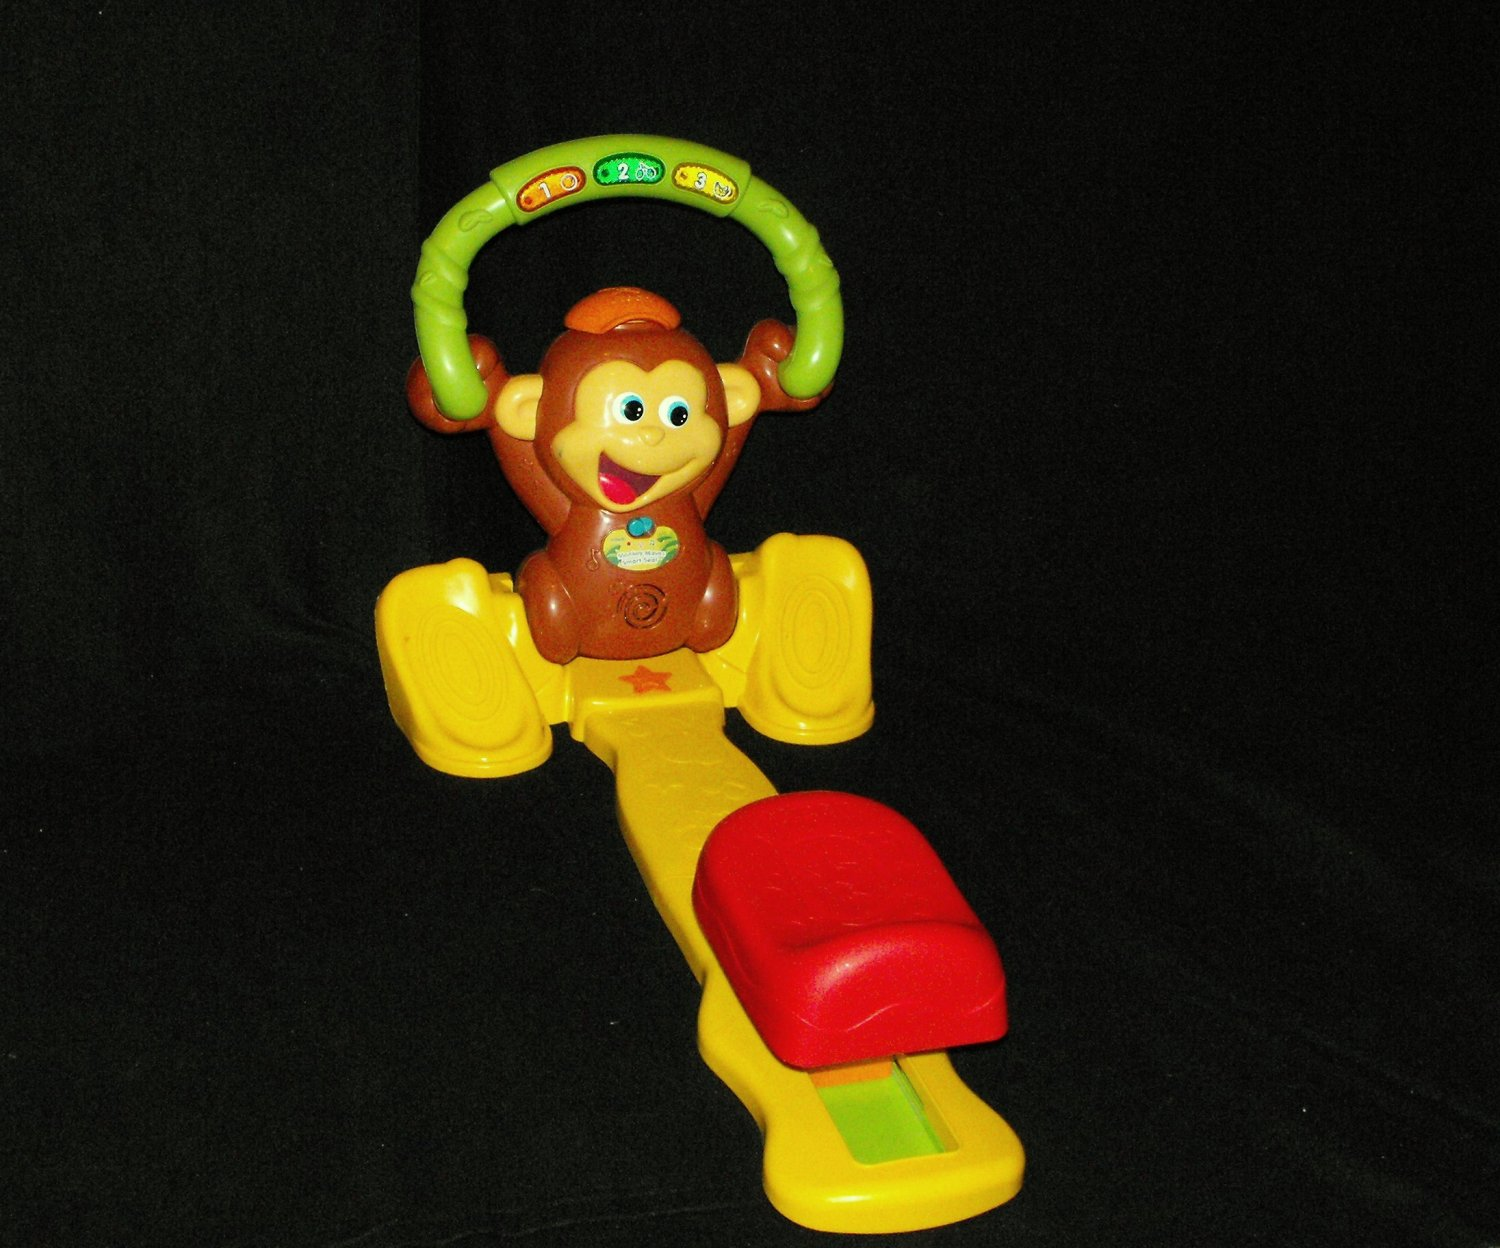 V-Tech Monkey Moves Smart Seat Baby Toy